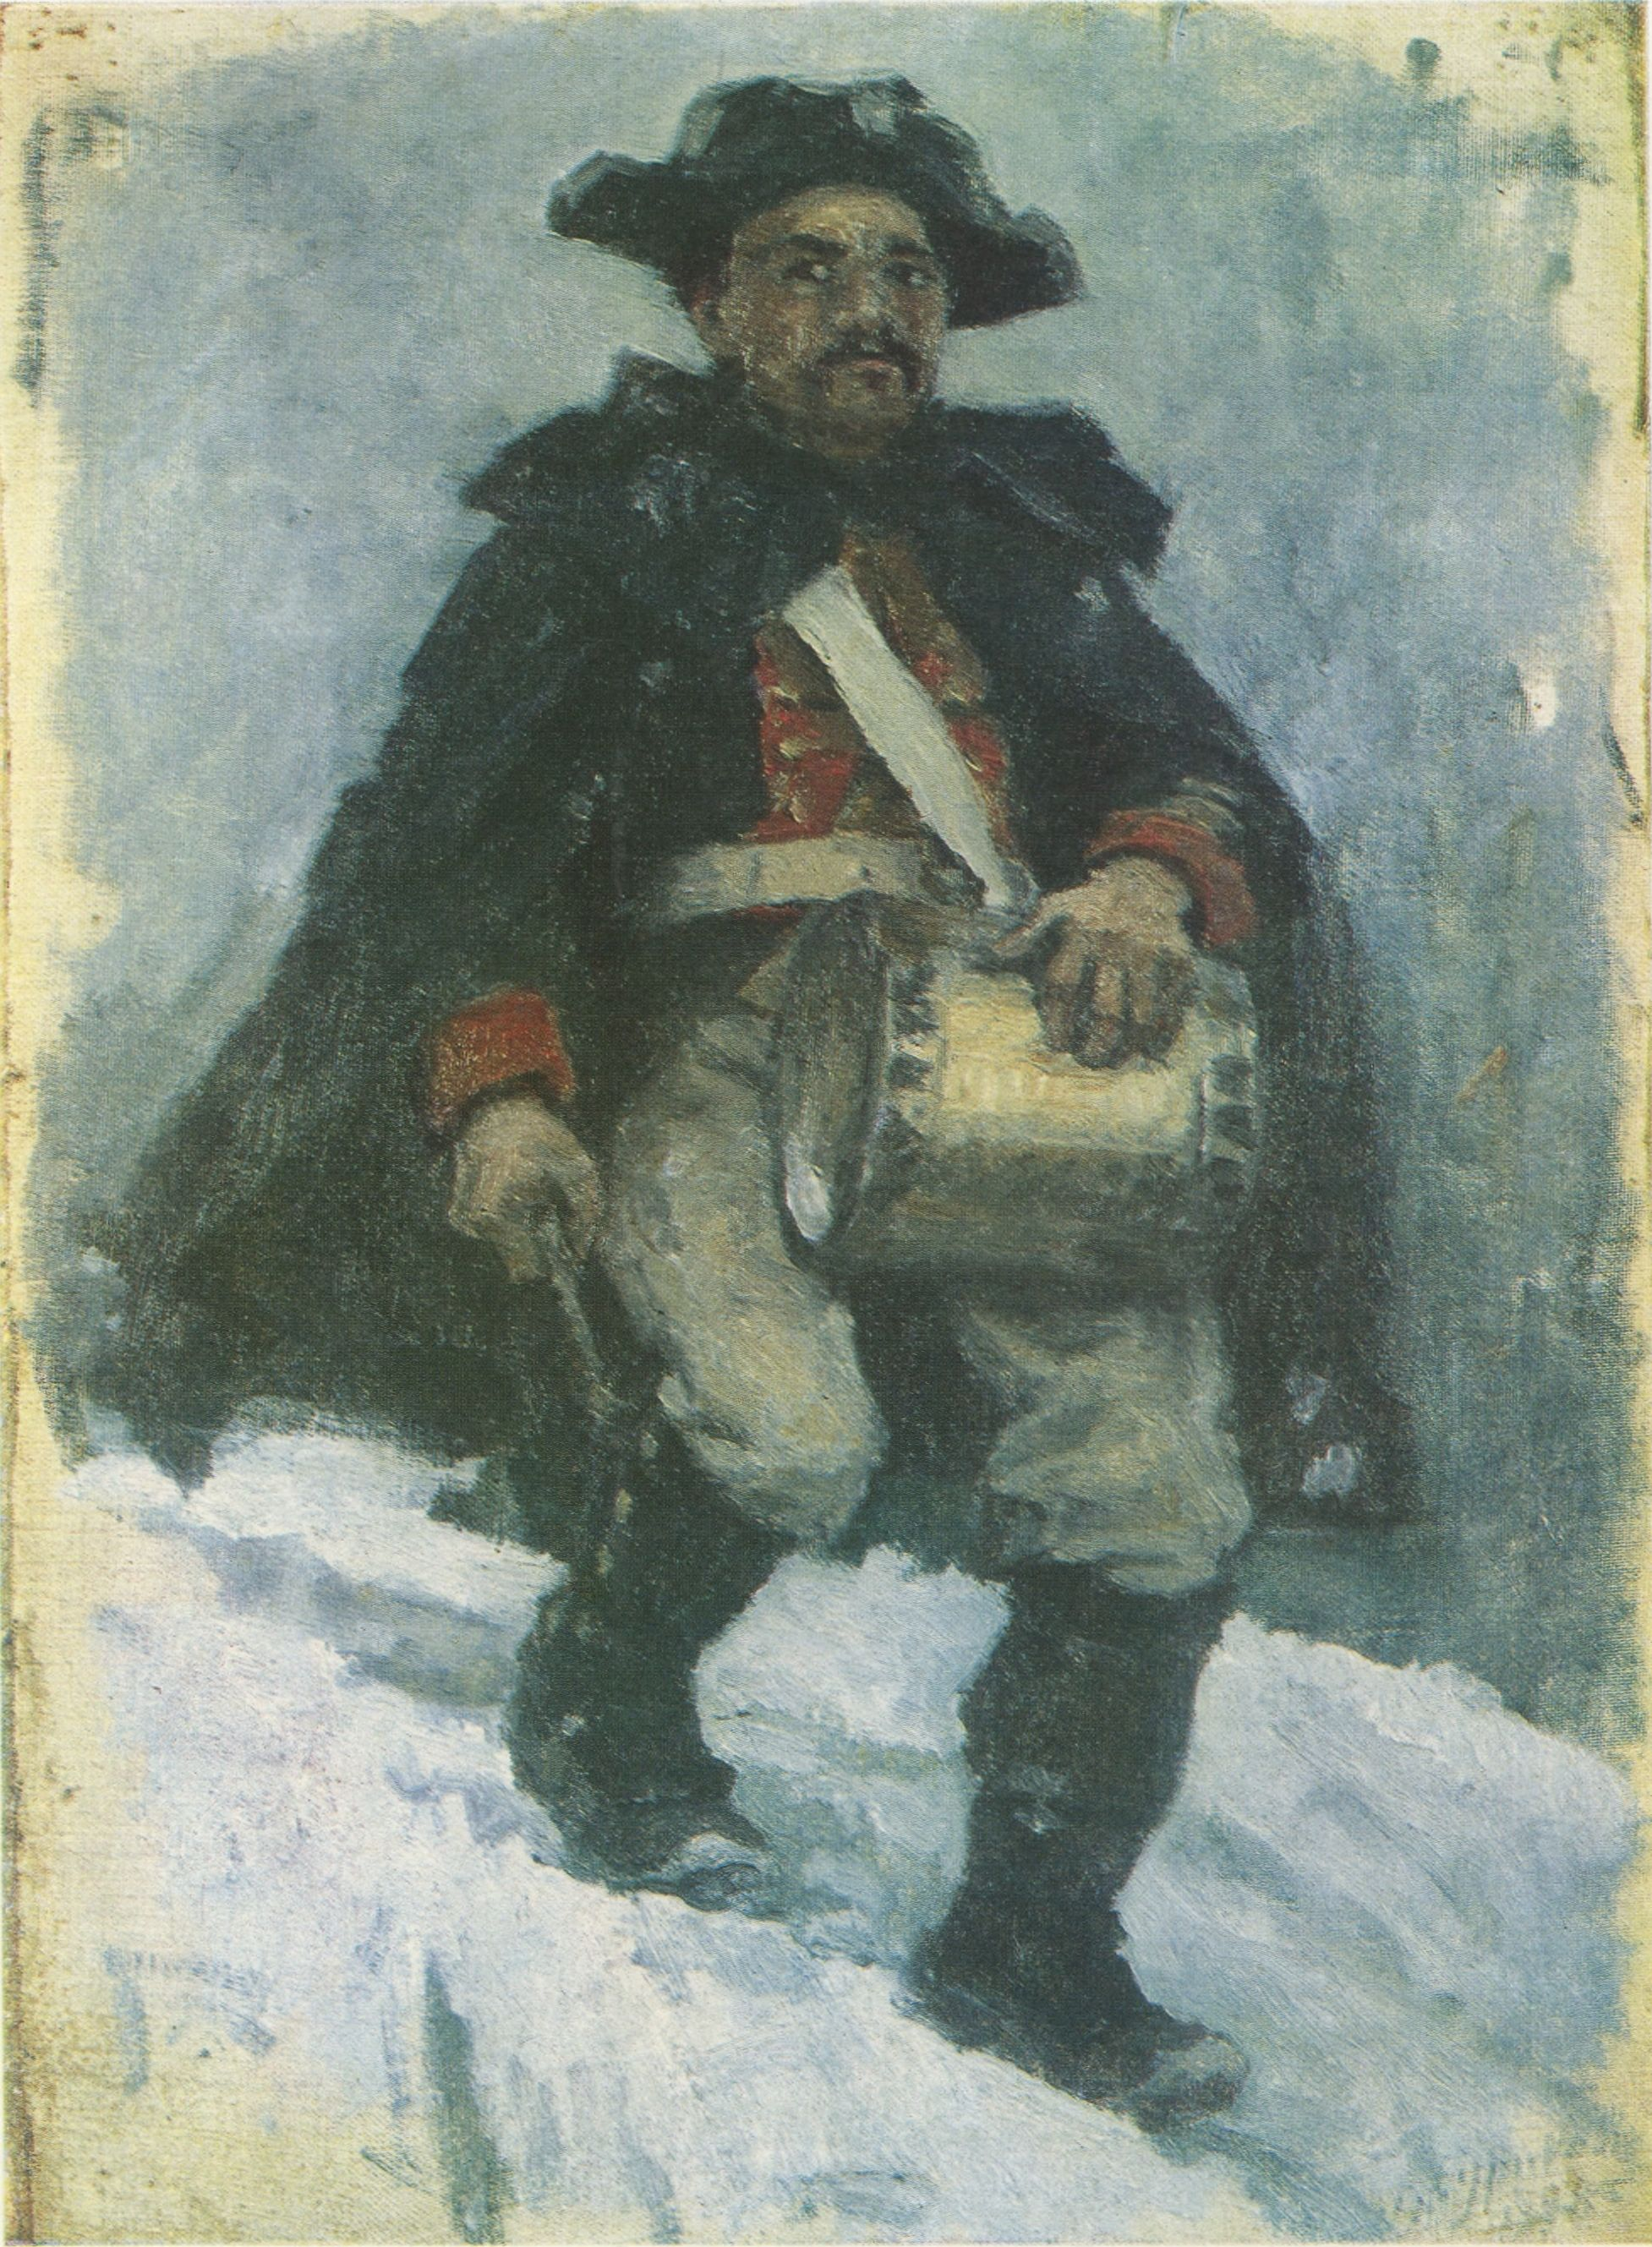 67. Солдат с барабаном. 1898 (Soldier with a Drum. 1898)